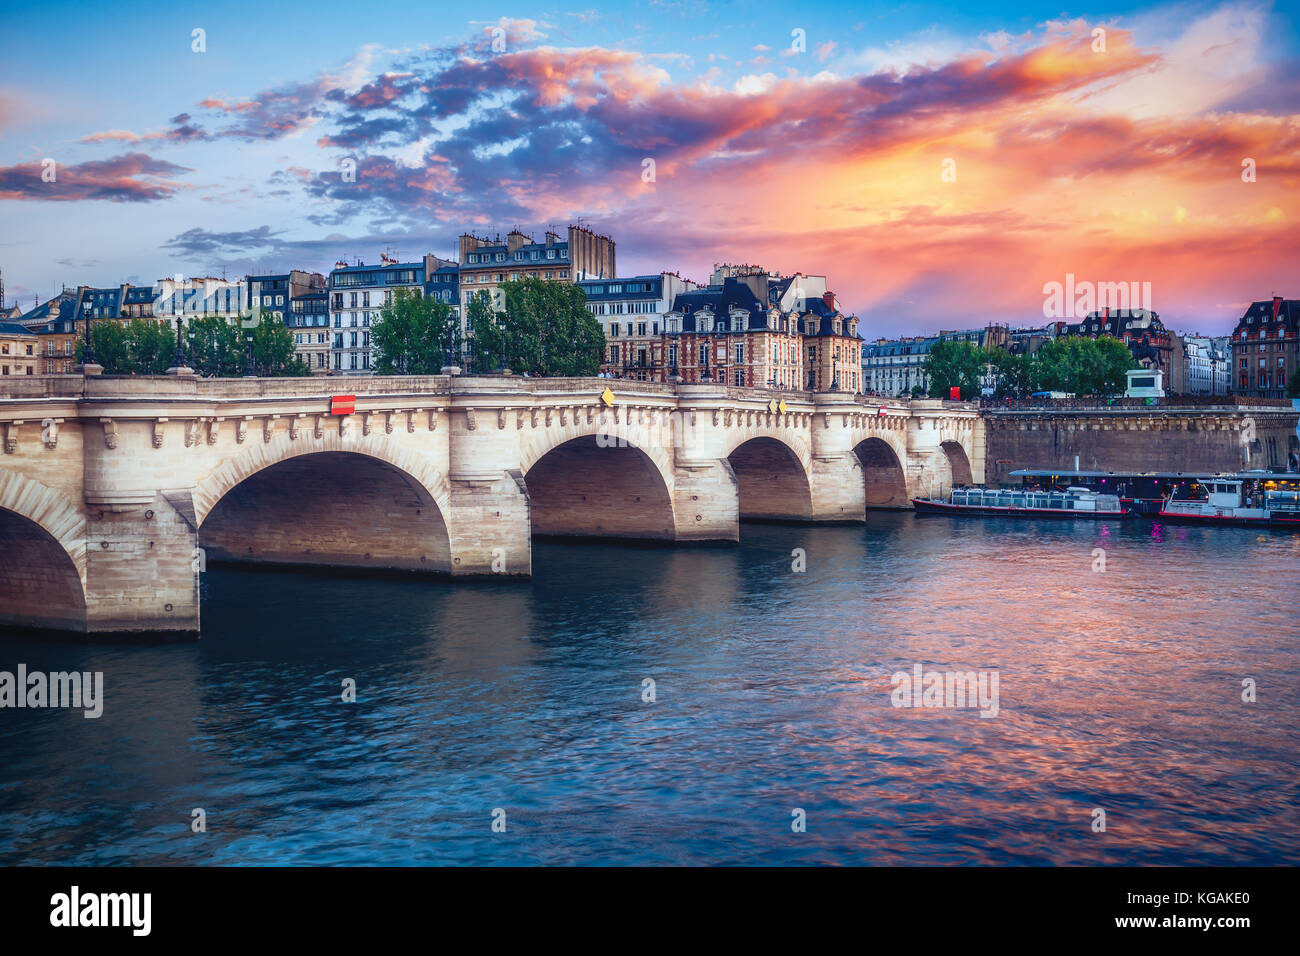 Famous Pont Neuf in Paris, France. Spectacular cityscape with dramatic sunset sky. Travel and architectural background. - Stock Image